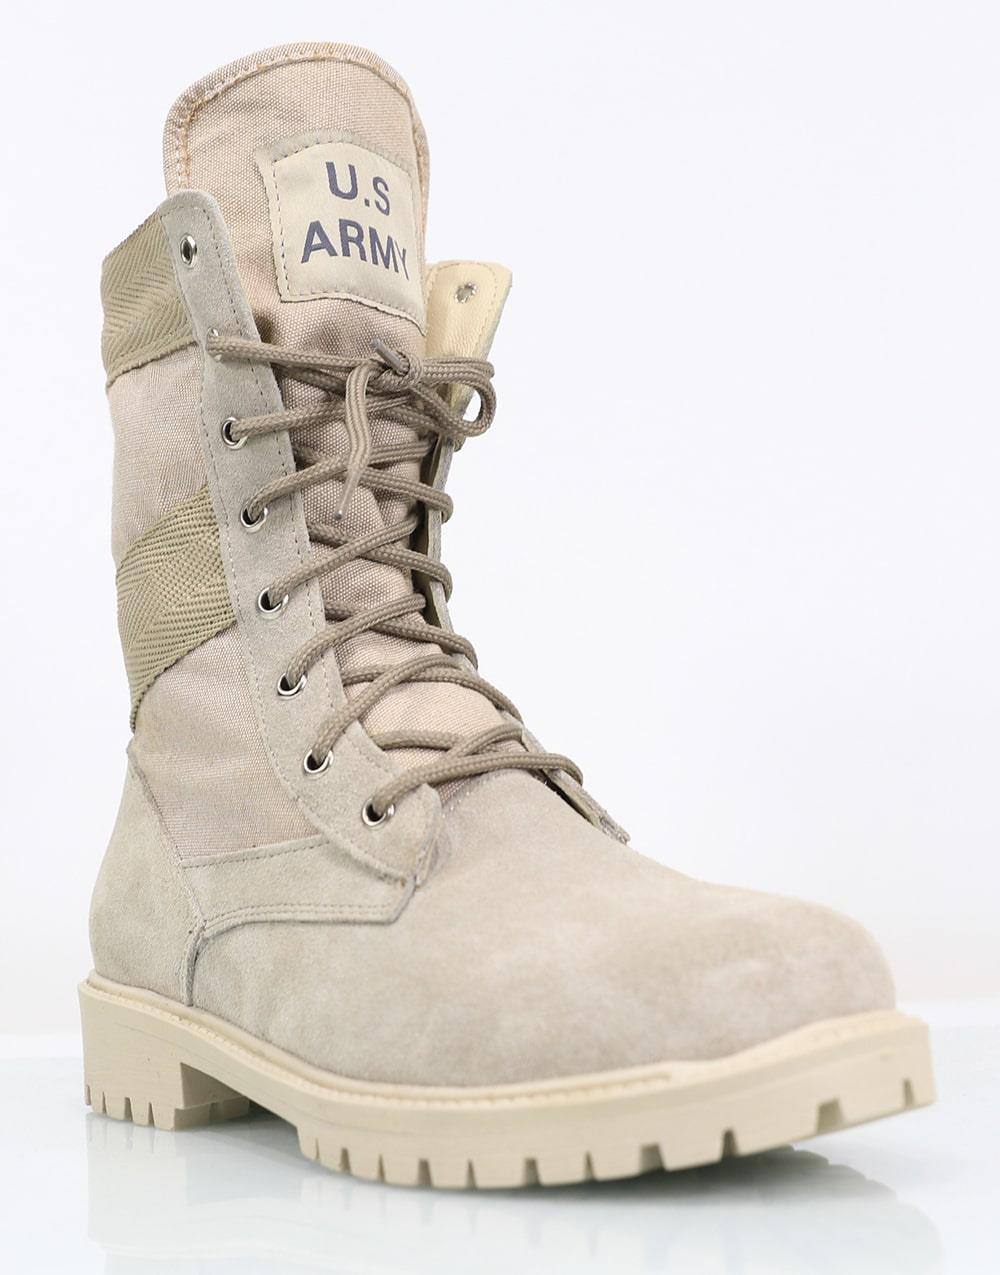 US Army Boots Military Leather Men's Boots